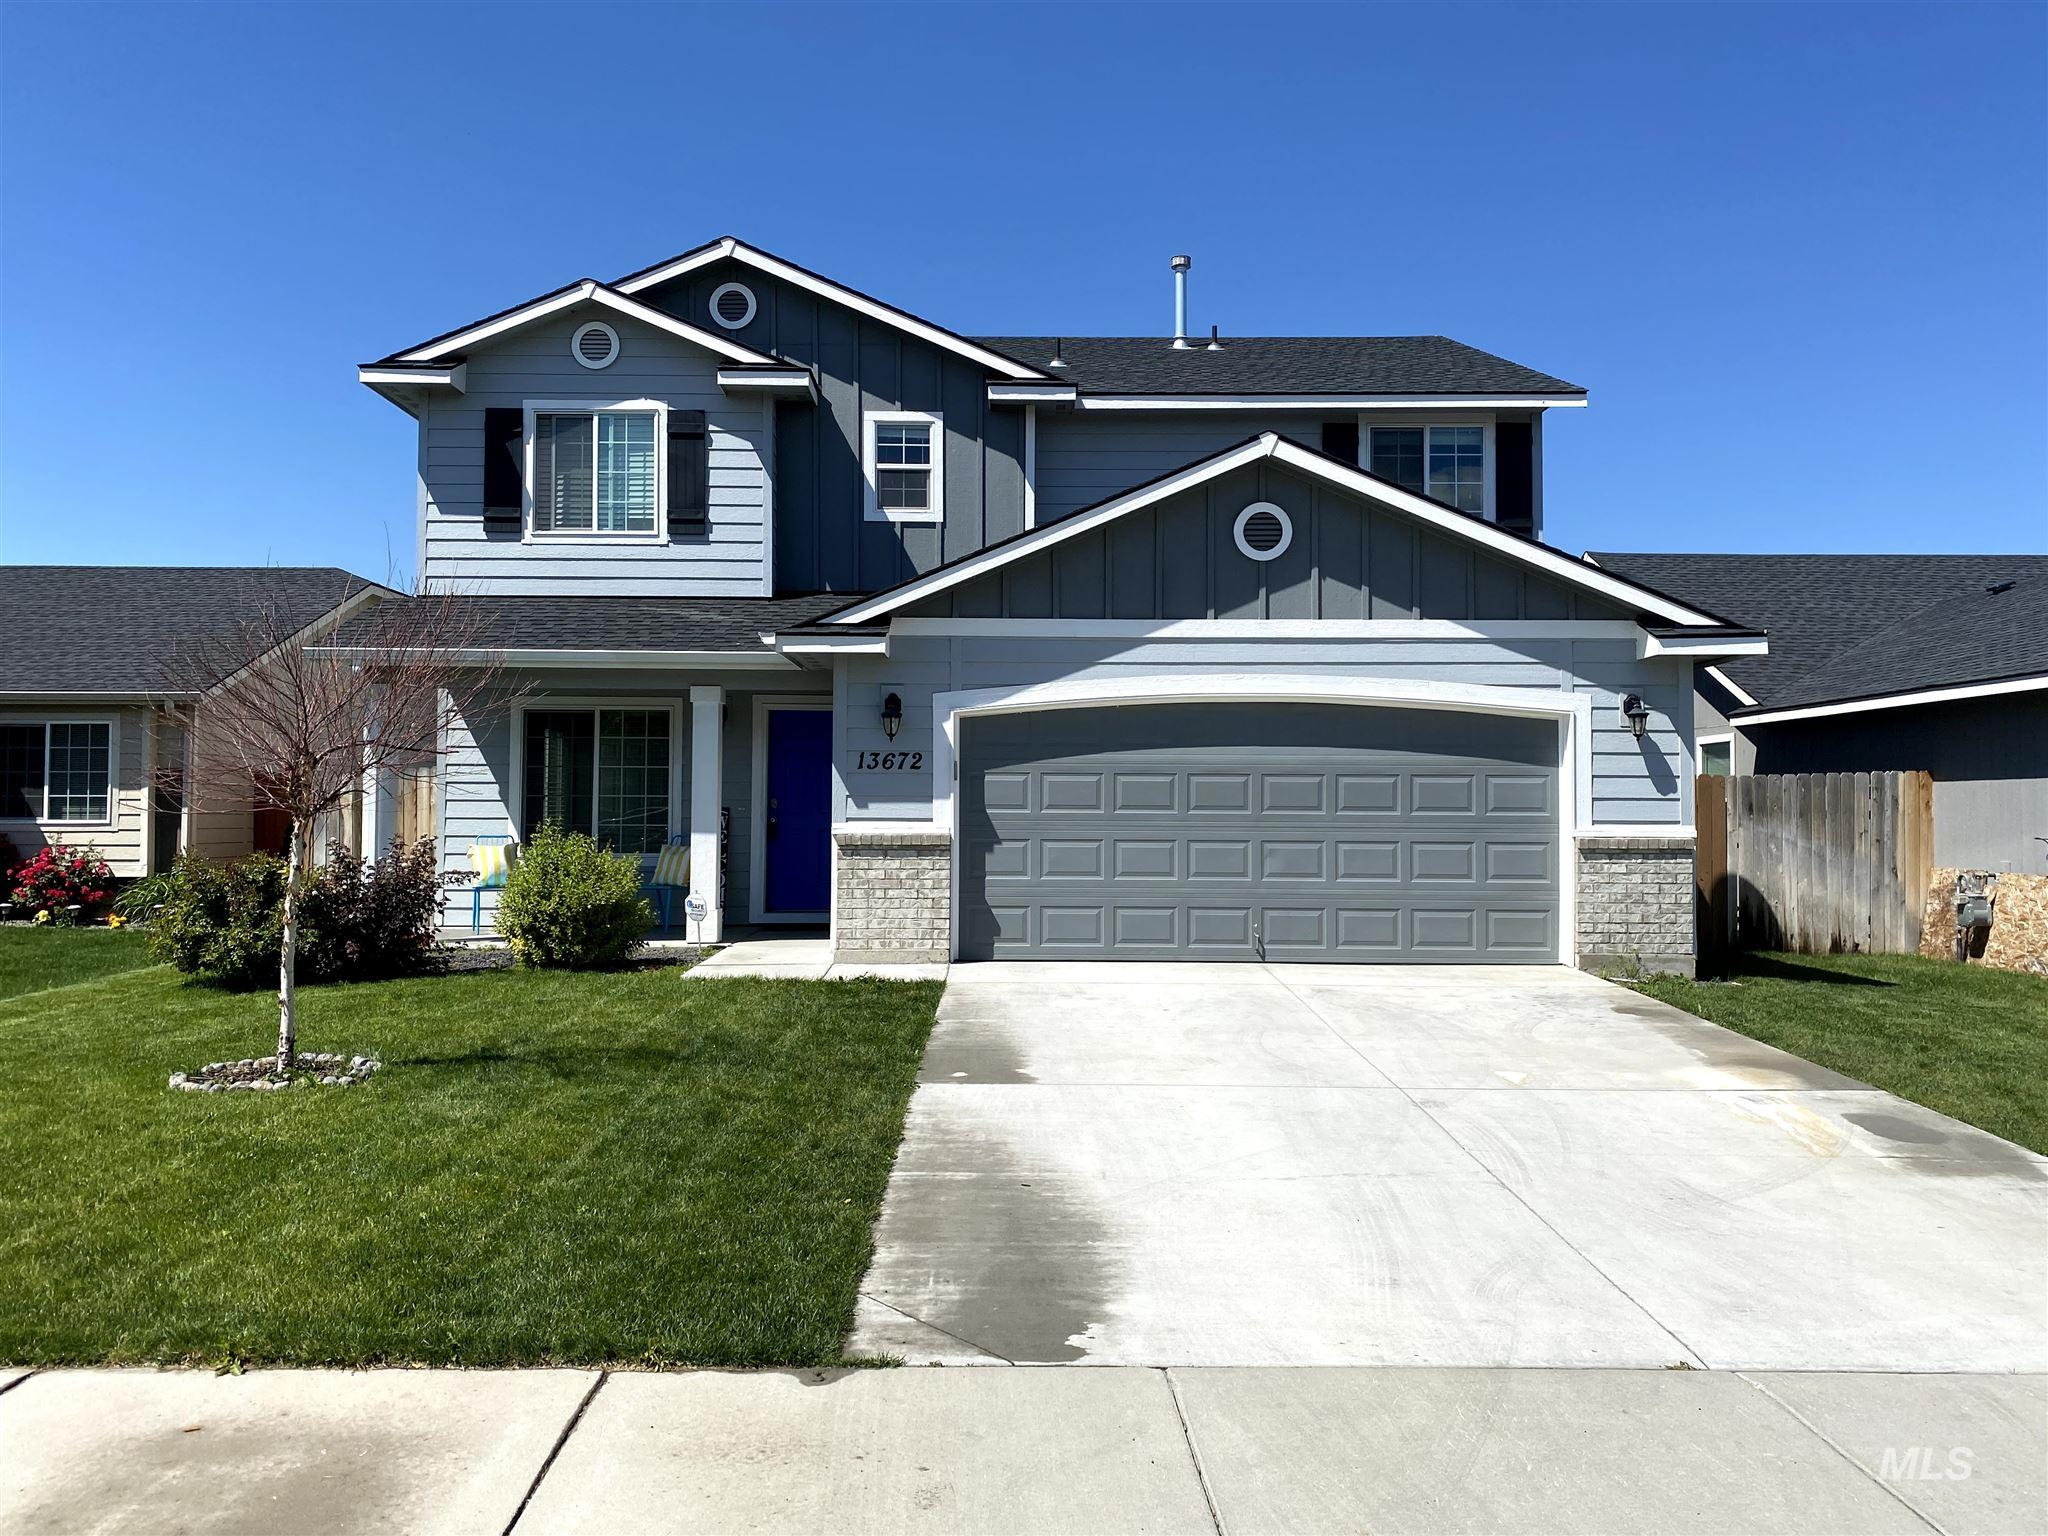 13672 Key West Street, Caldwell, Idaho 83607, 5 Bedrooms, 3 Bathrooms, Residential For Sale, Price $274,950, 98768724